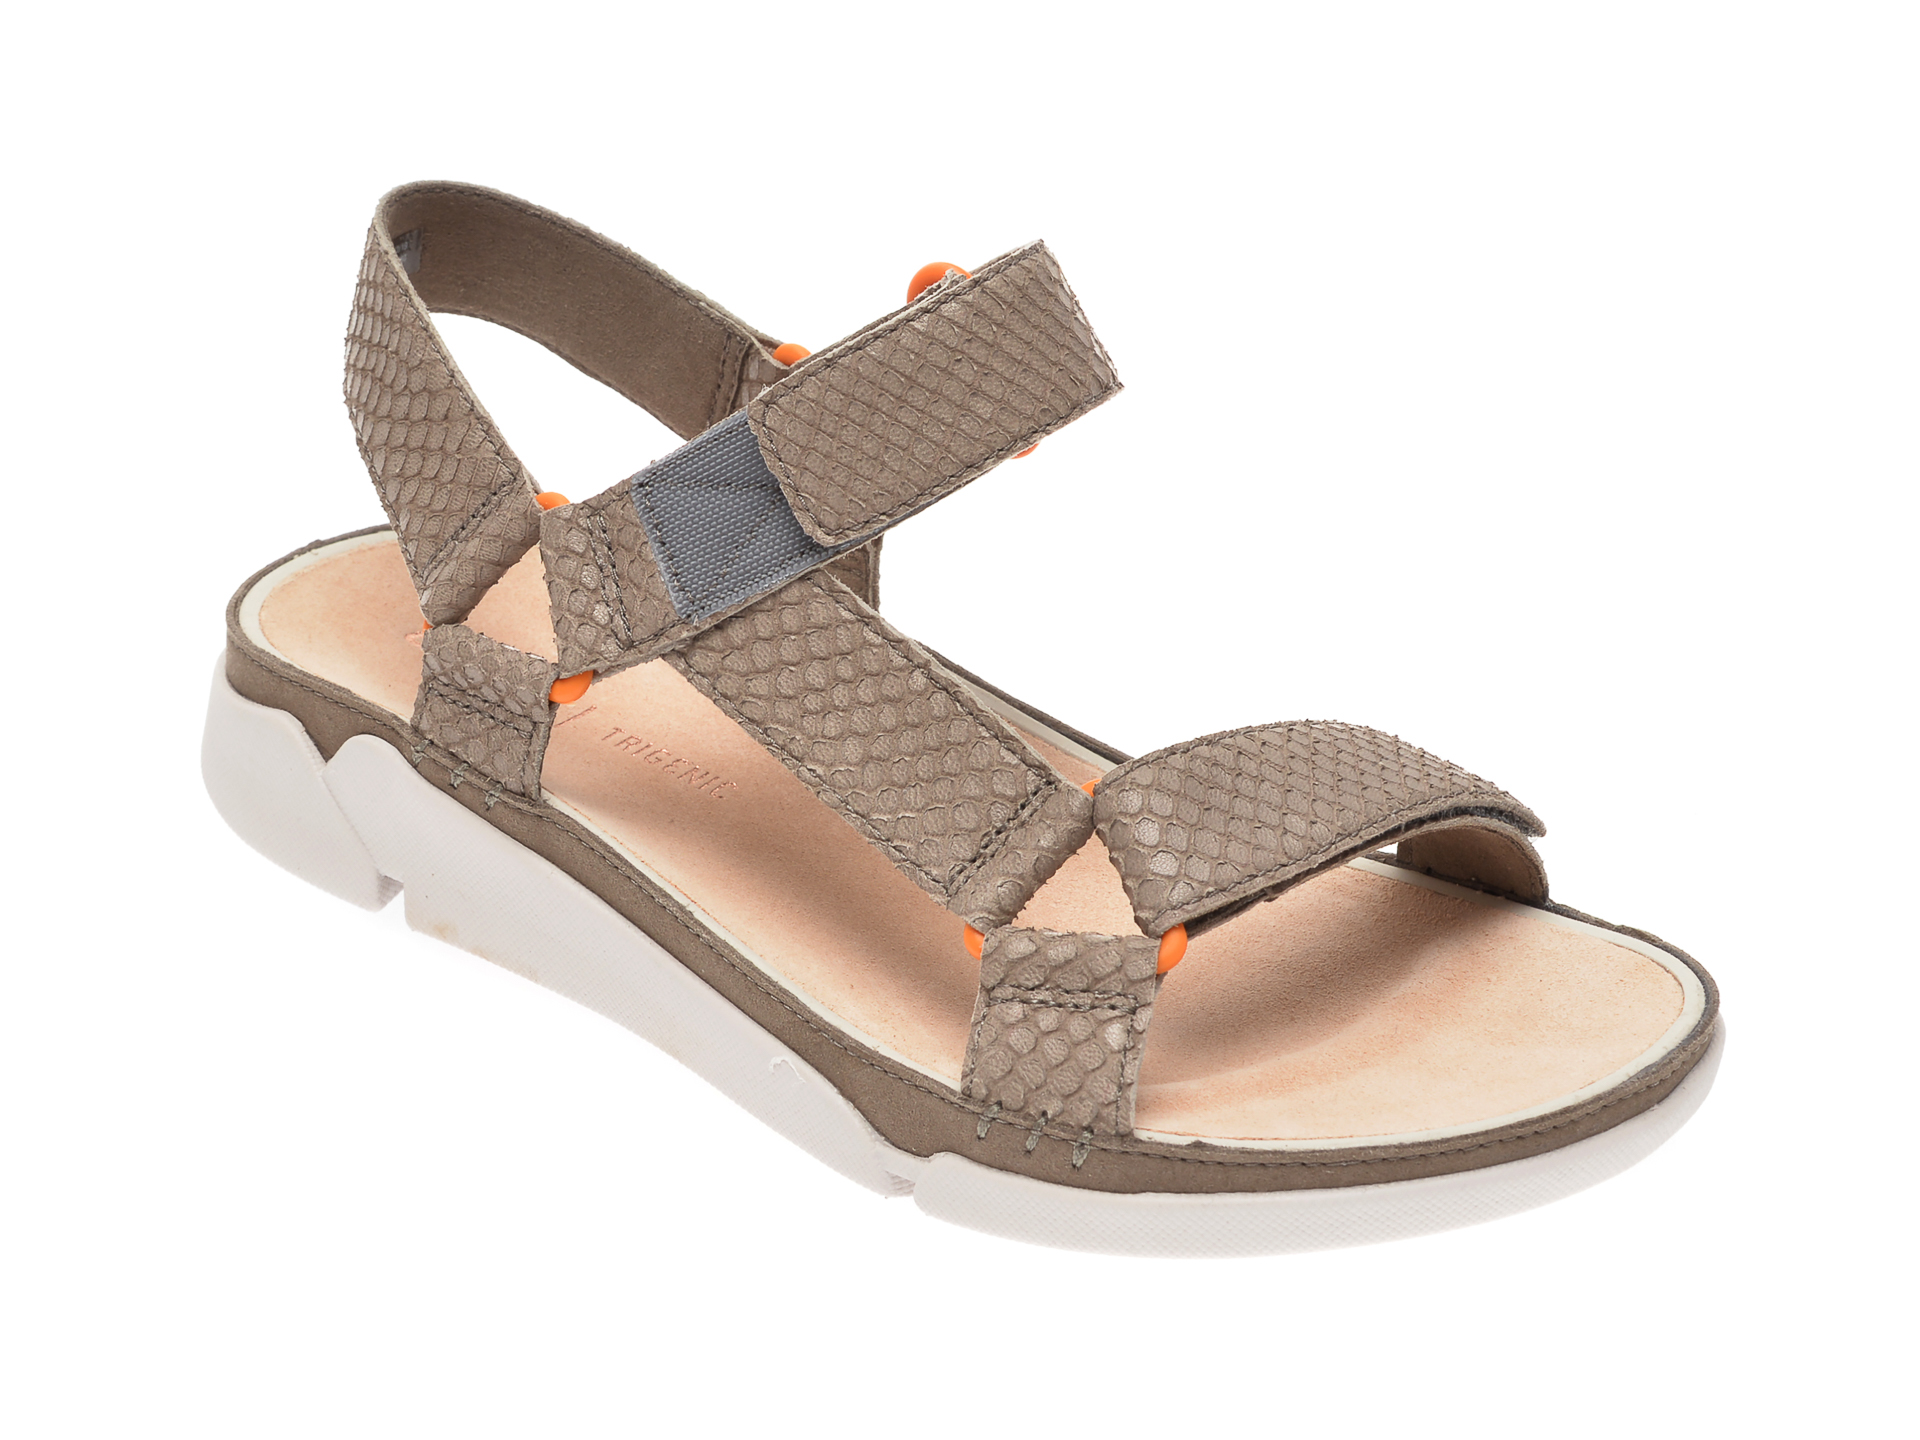 Sandale CLARKS nude, Lafley Lily, din piele naturala si material textil